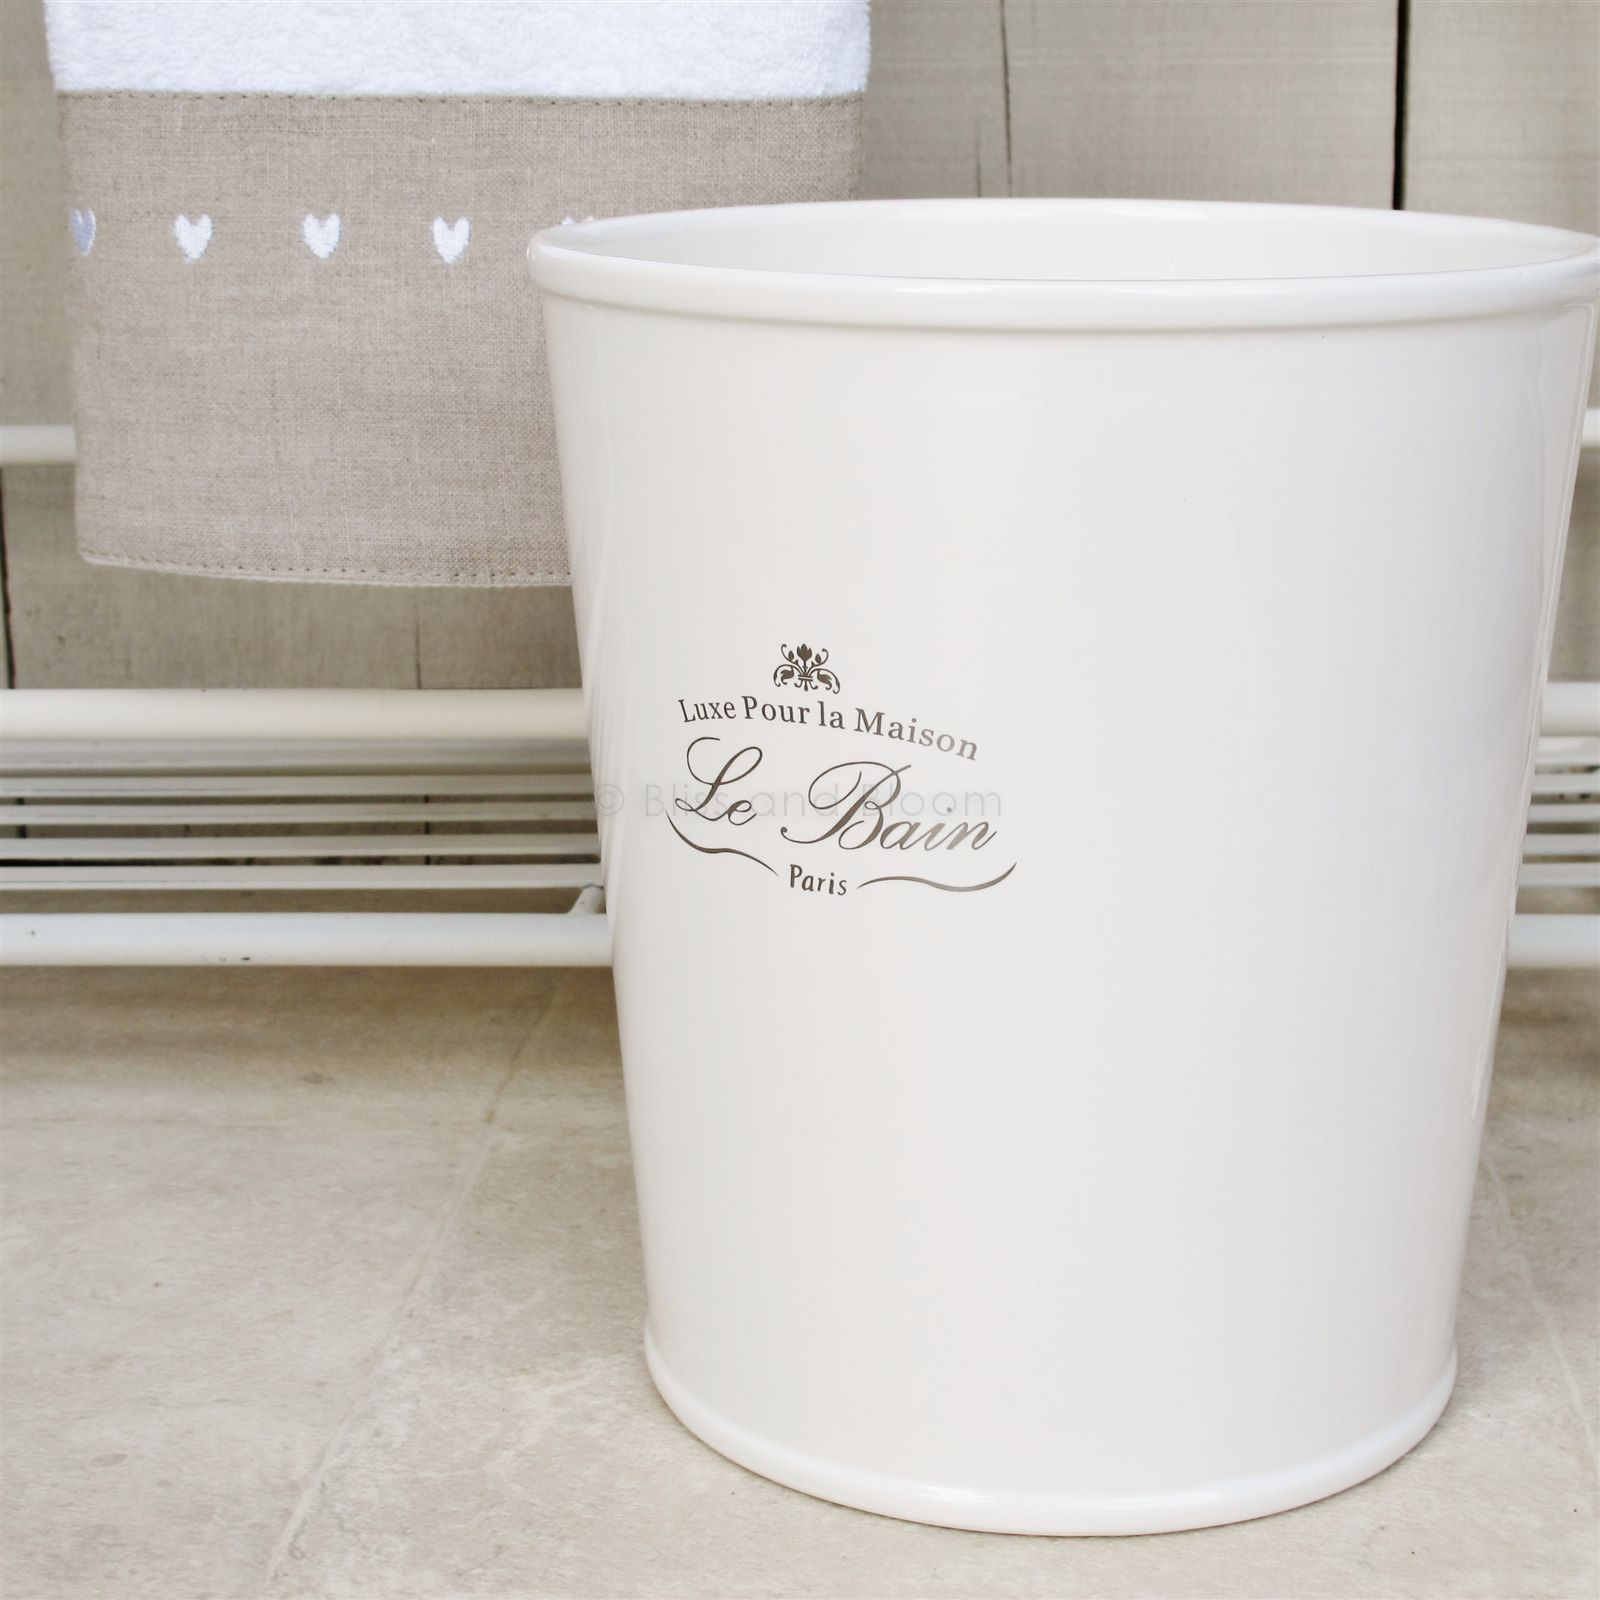 le bain ceramic bin bliss and bloom ltd